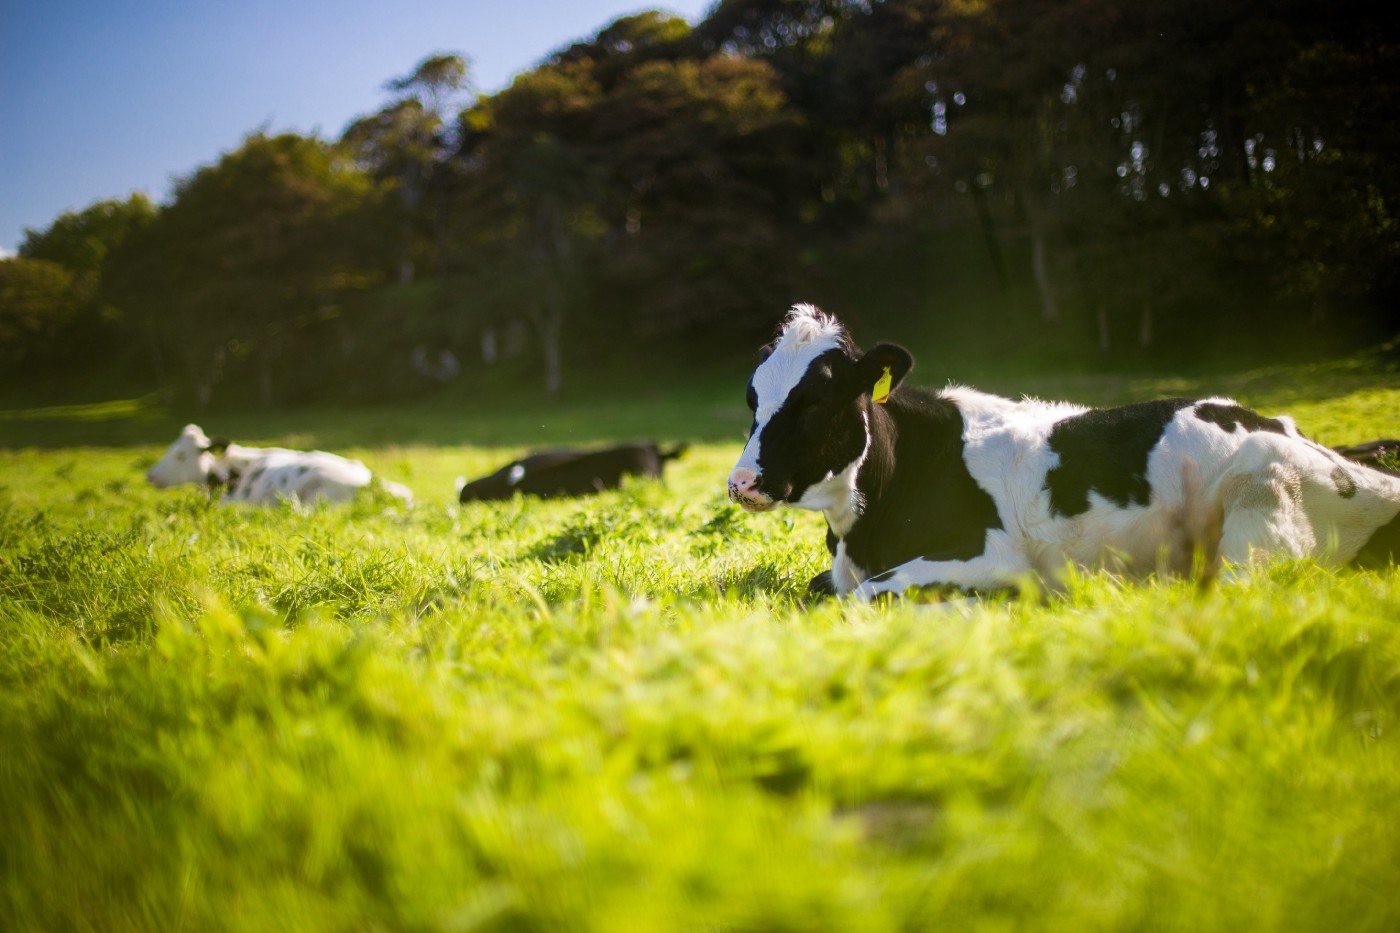 Cows grazing in a pasture